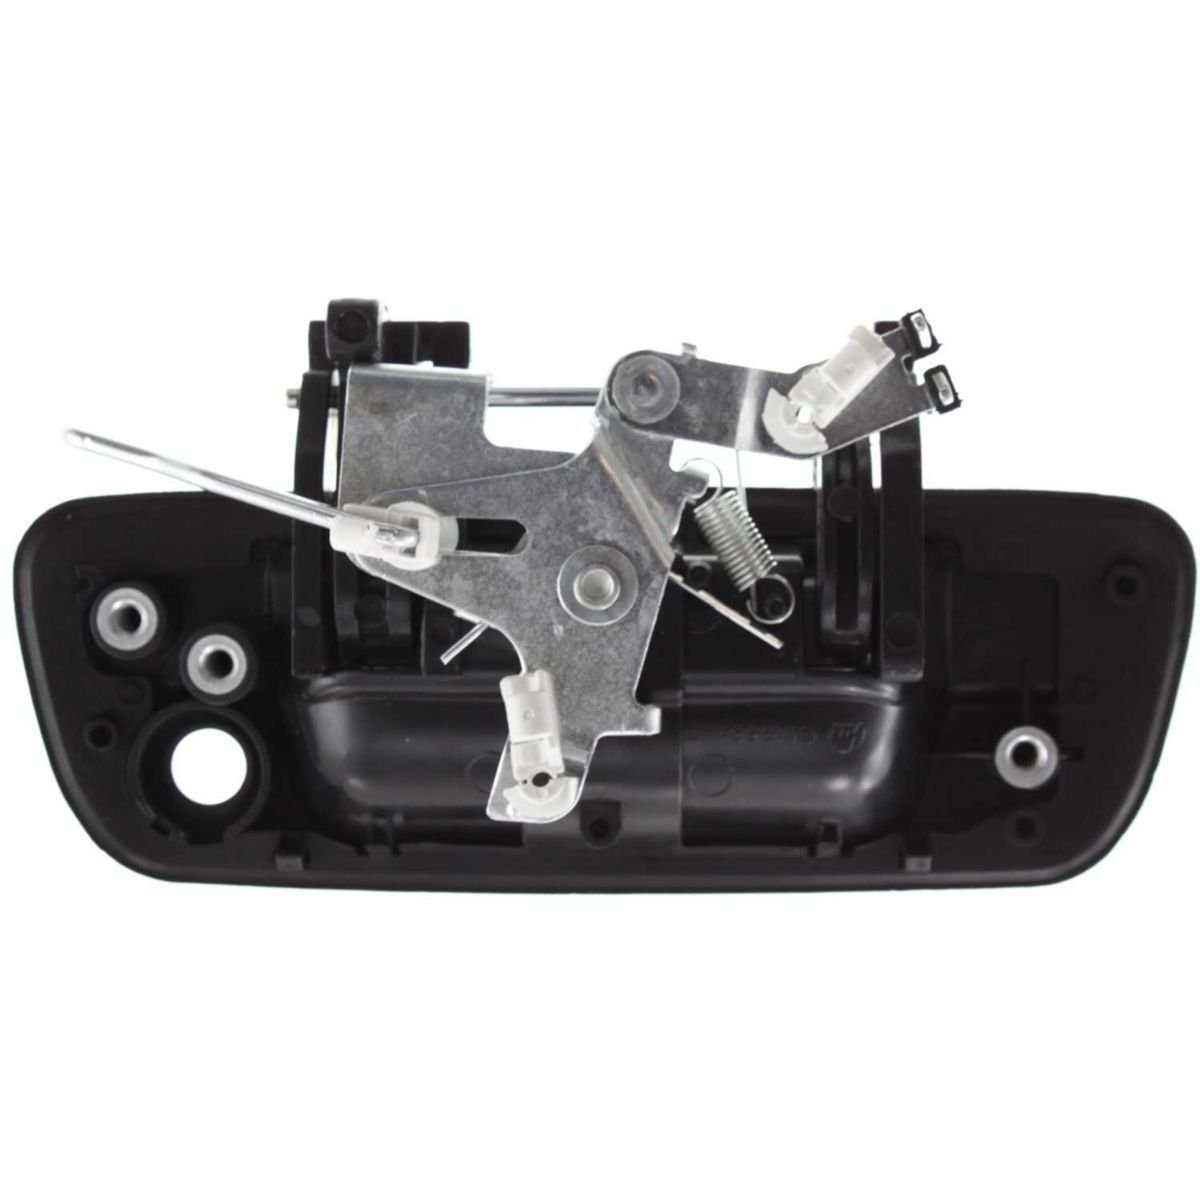 New Door Handle Driver Left Side Rear Outer Exterior Outside Black Chevy Yukon Diften 120-A5472-X01